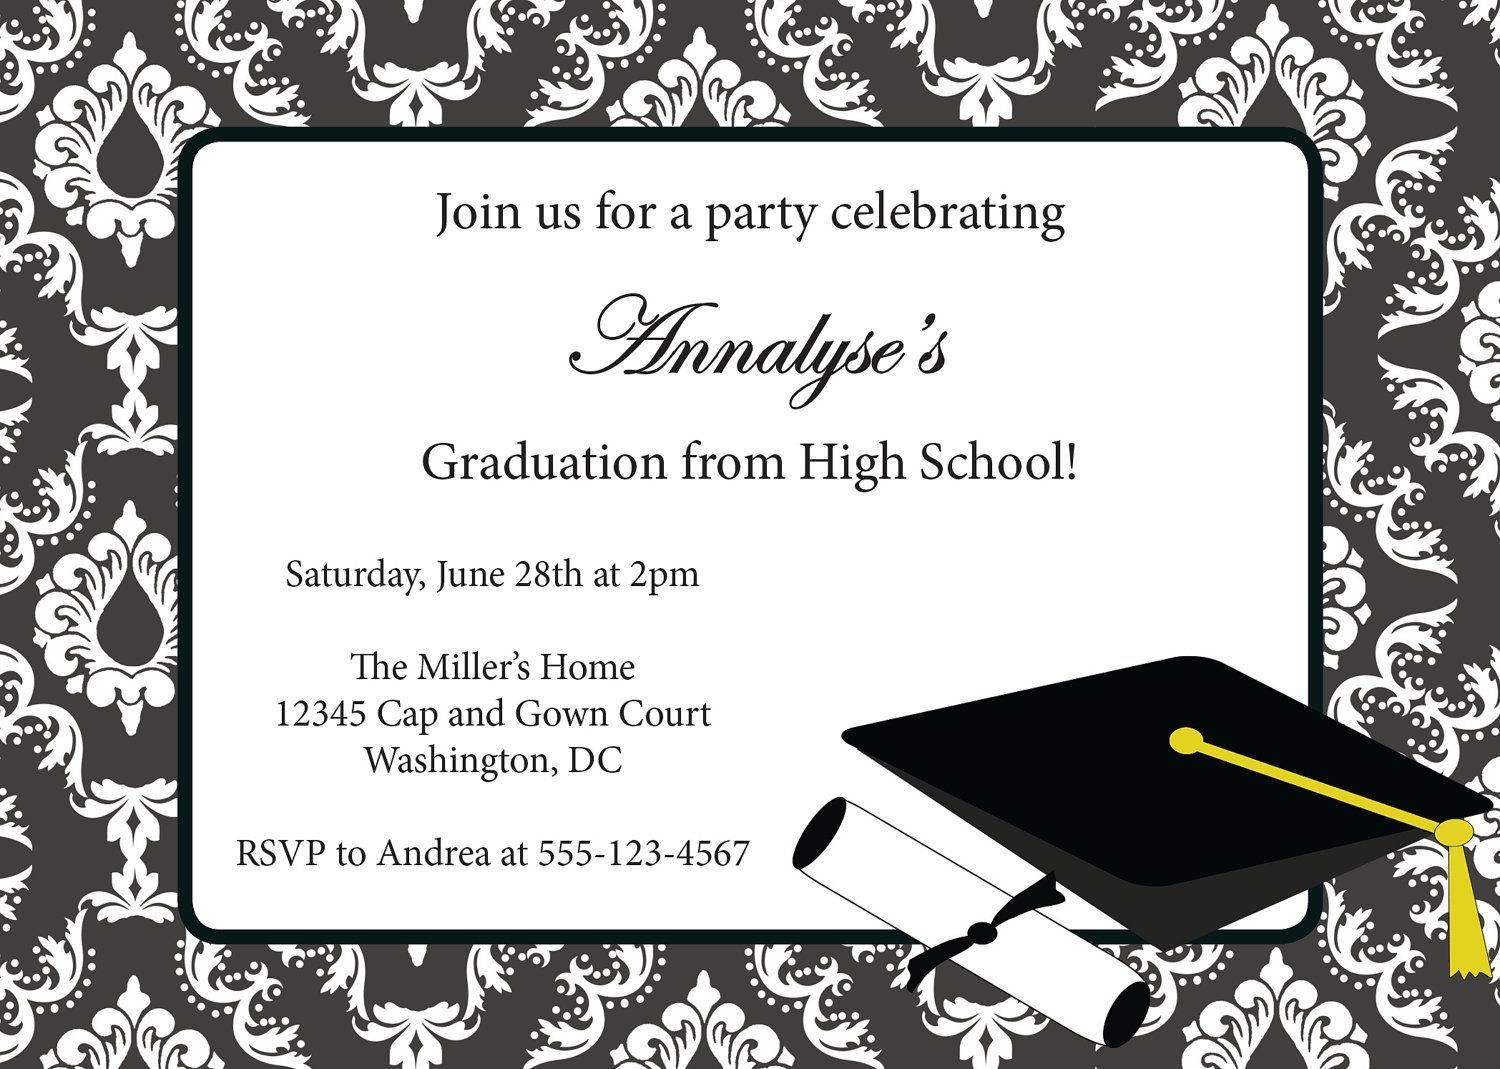 Sample Invitation Card For Graduation Party | Graduation Invitation - Free Printable Graduation Invitations 2014